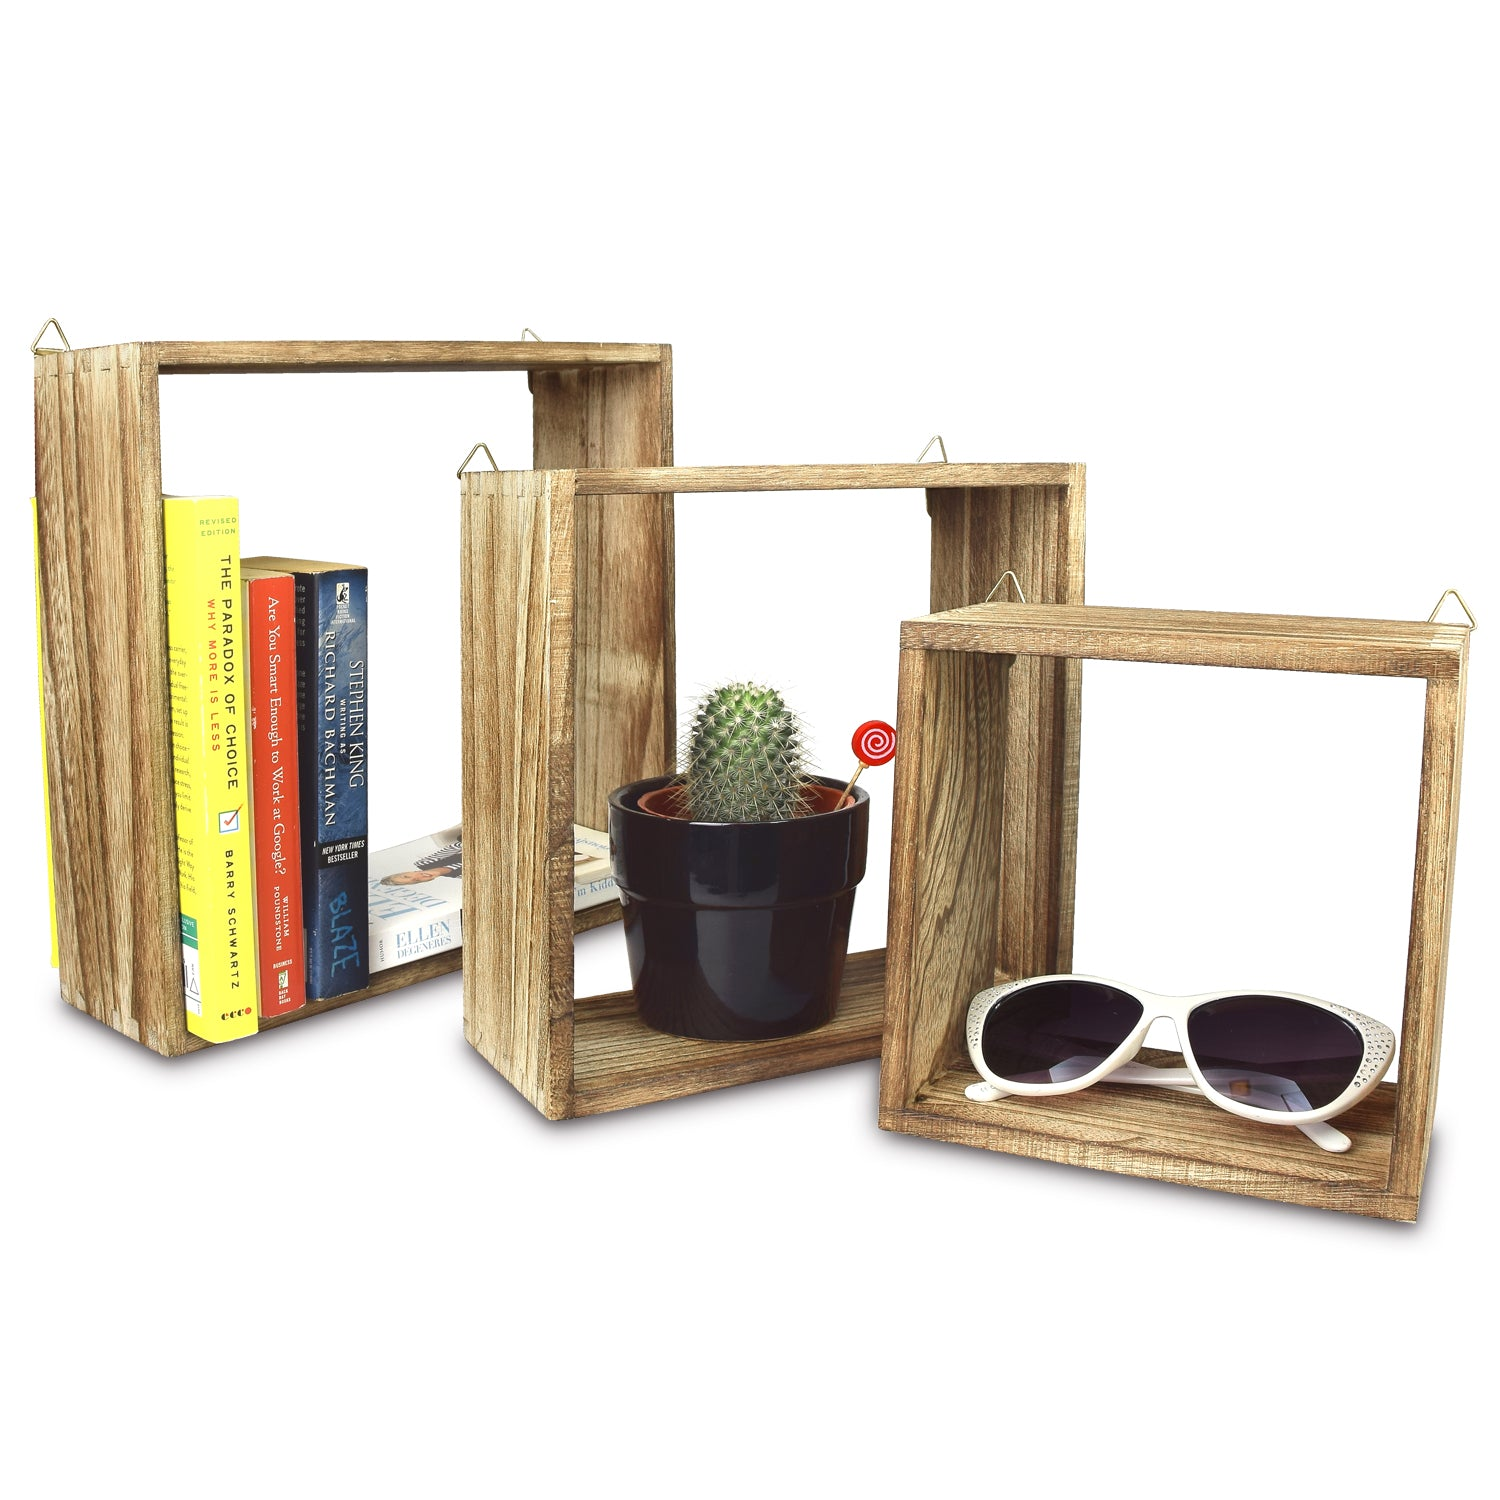 Ikee design wooden square wall mounted floating display shelves set of 3